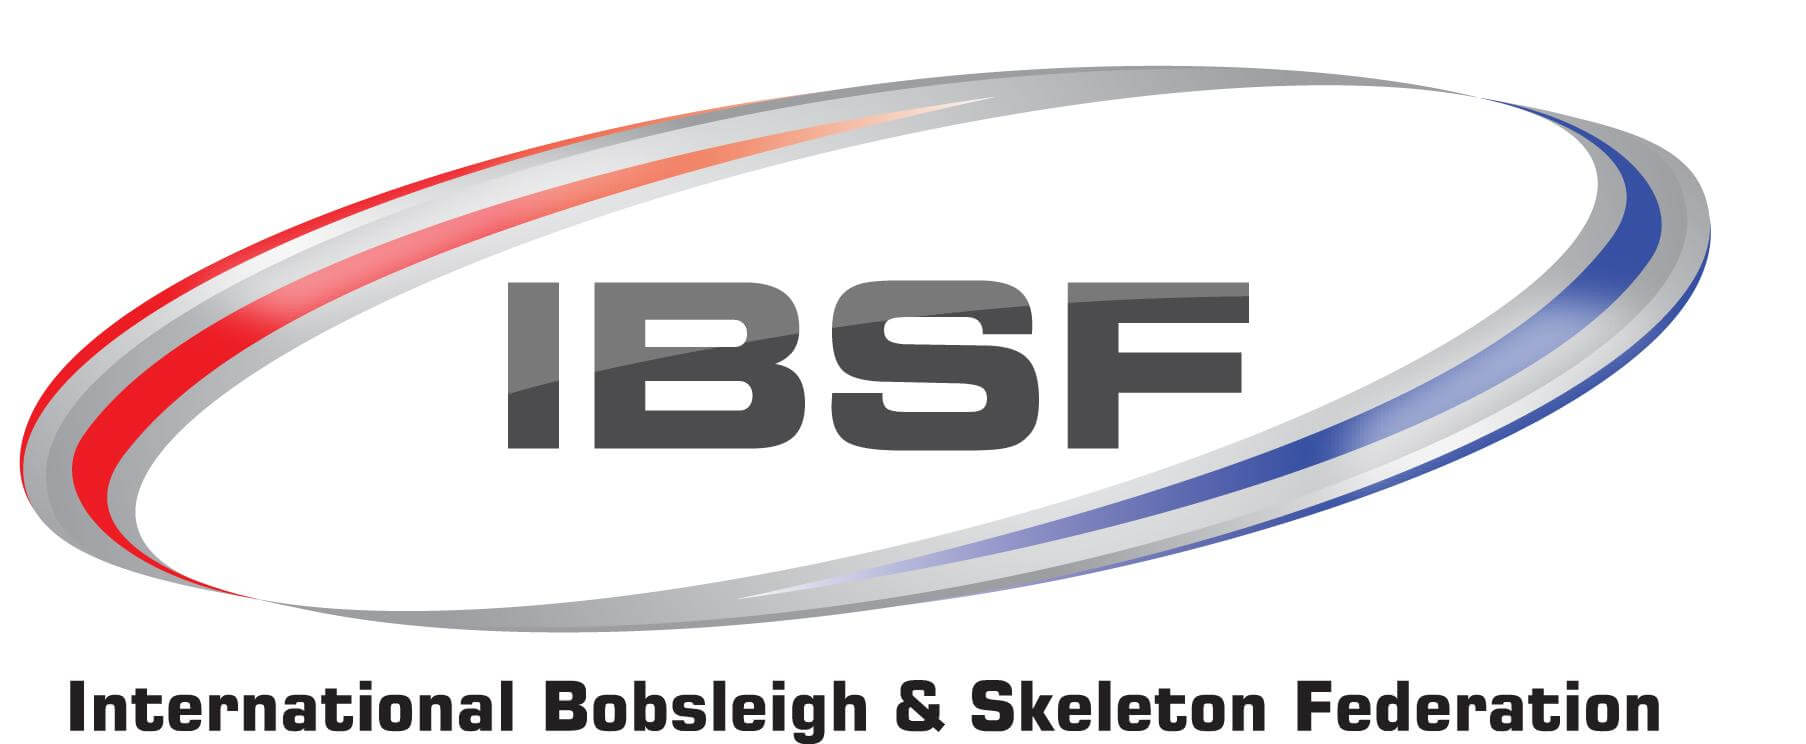 FIBT Federation Internationale de Bobsleigh et de Tobogganing logo1